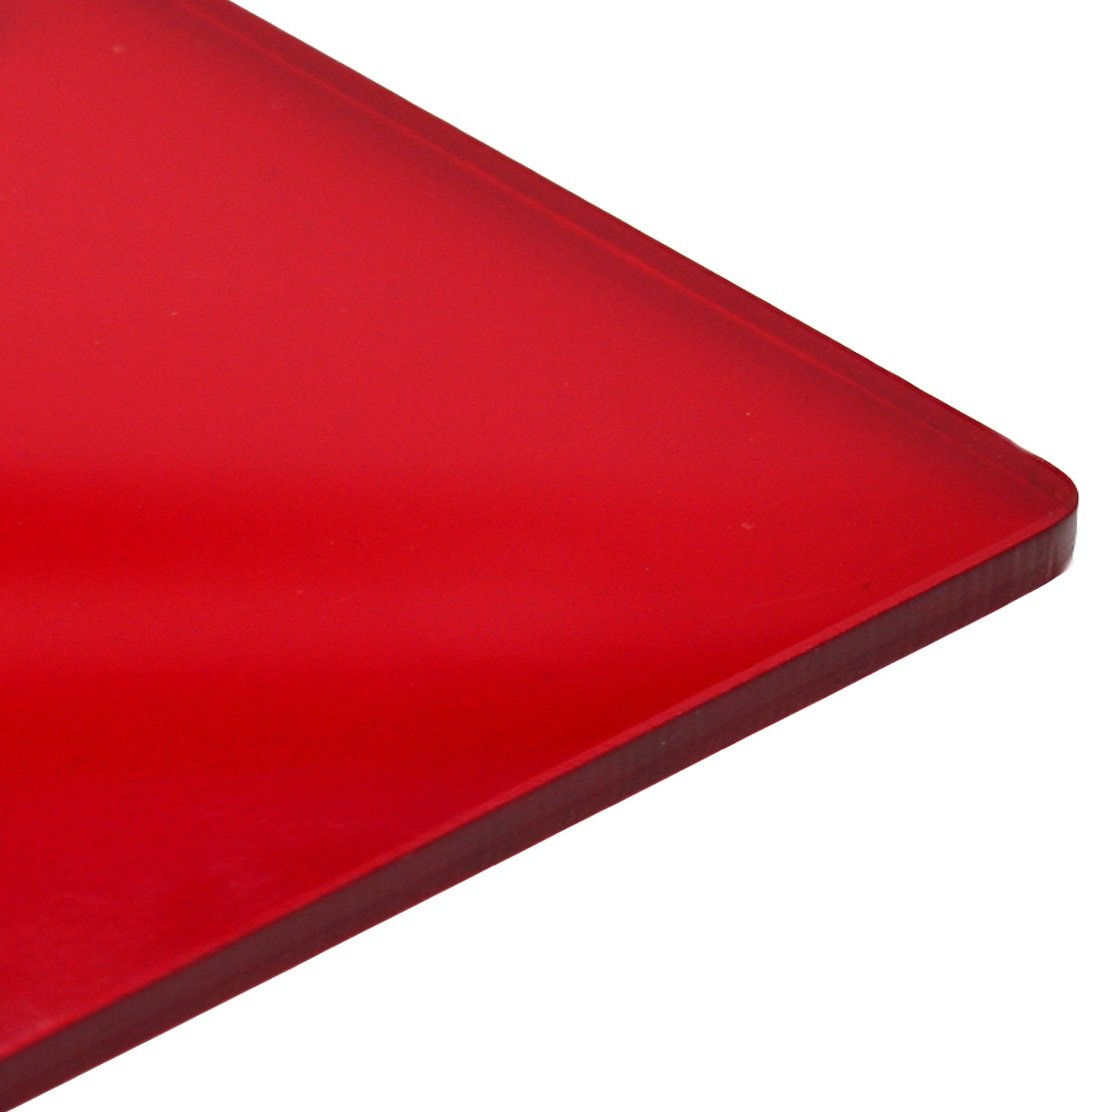 3mm Red Gloss Transparent 4401 Perspex Cast Acrylic Sheet A6 148mm x 105mm